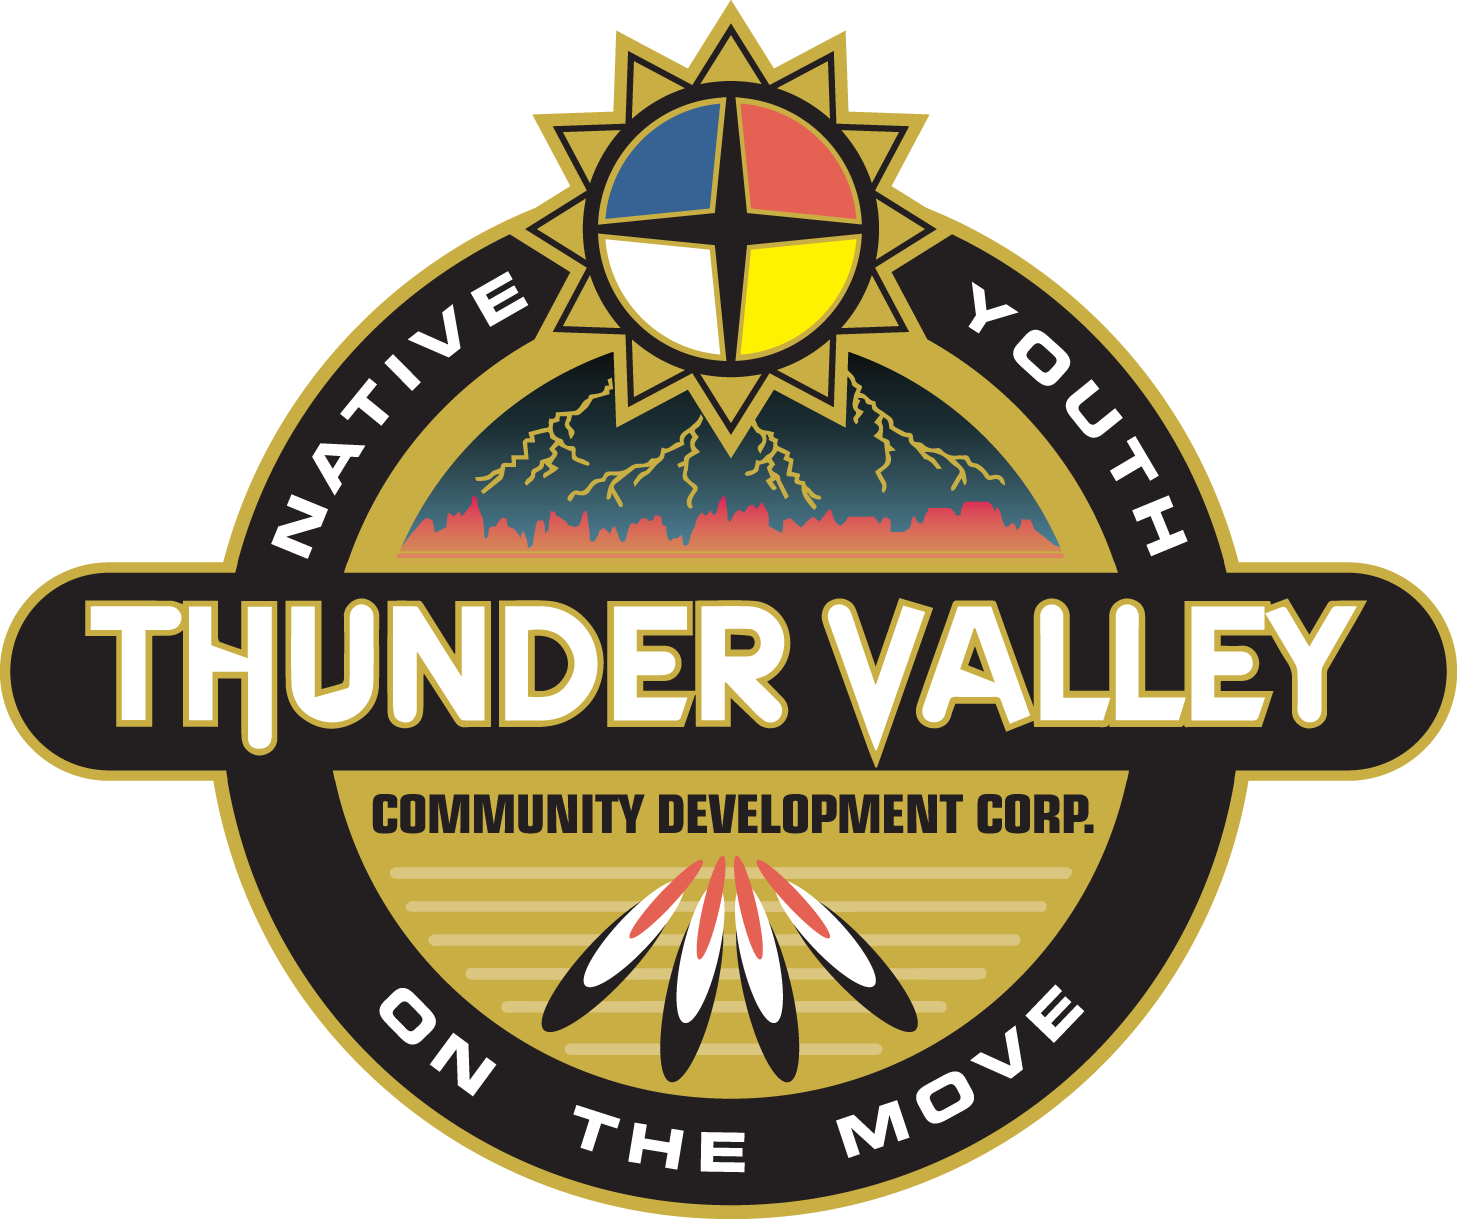 thundervalleycorp.png